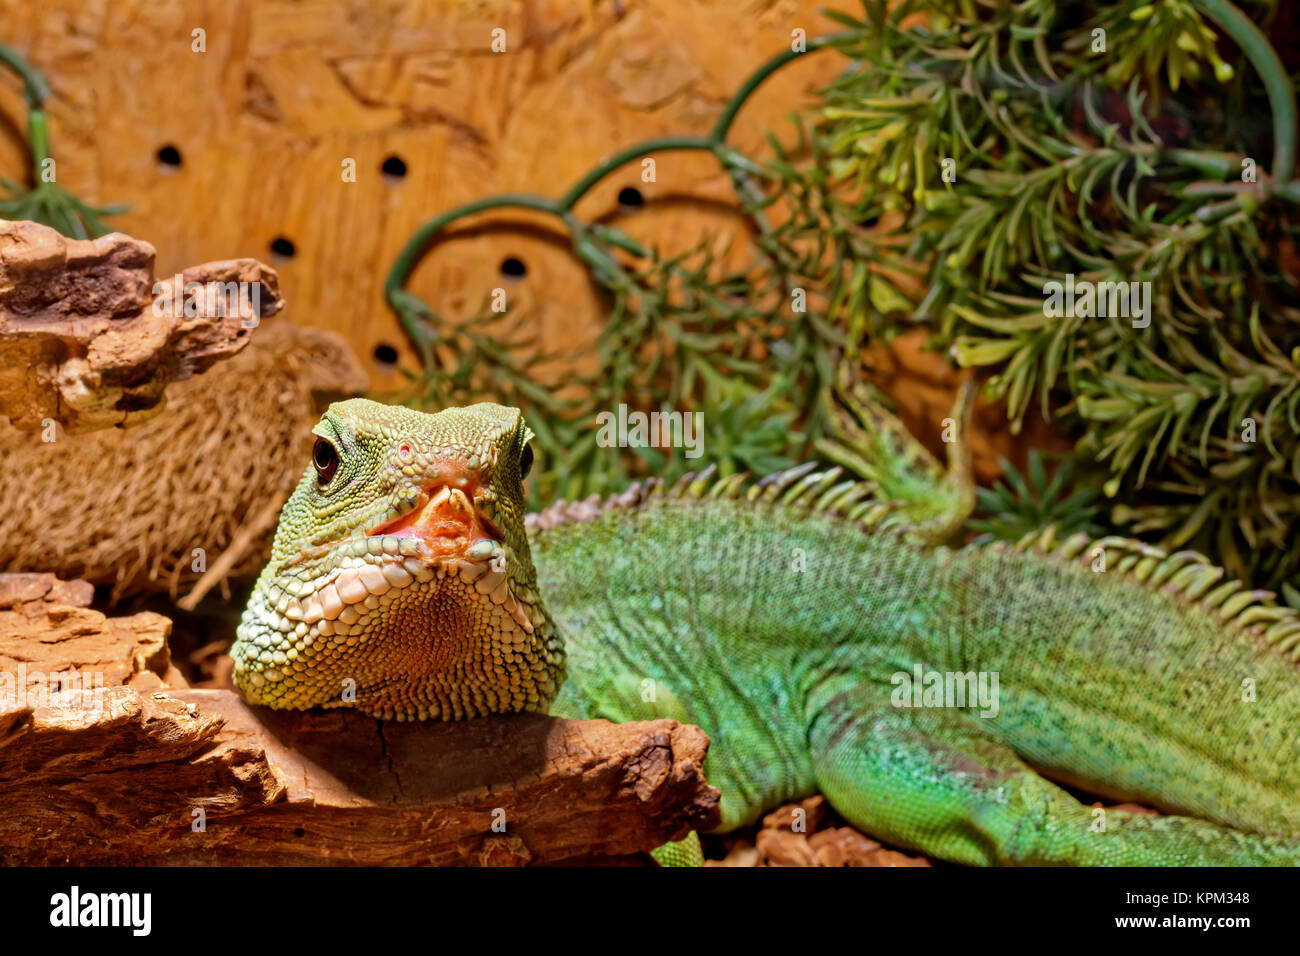 Reptile In The Terrarium Chinese Water Dragon Stock Photo